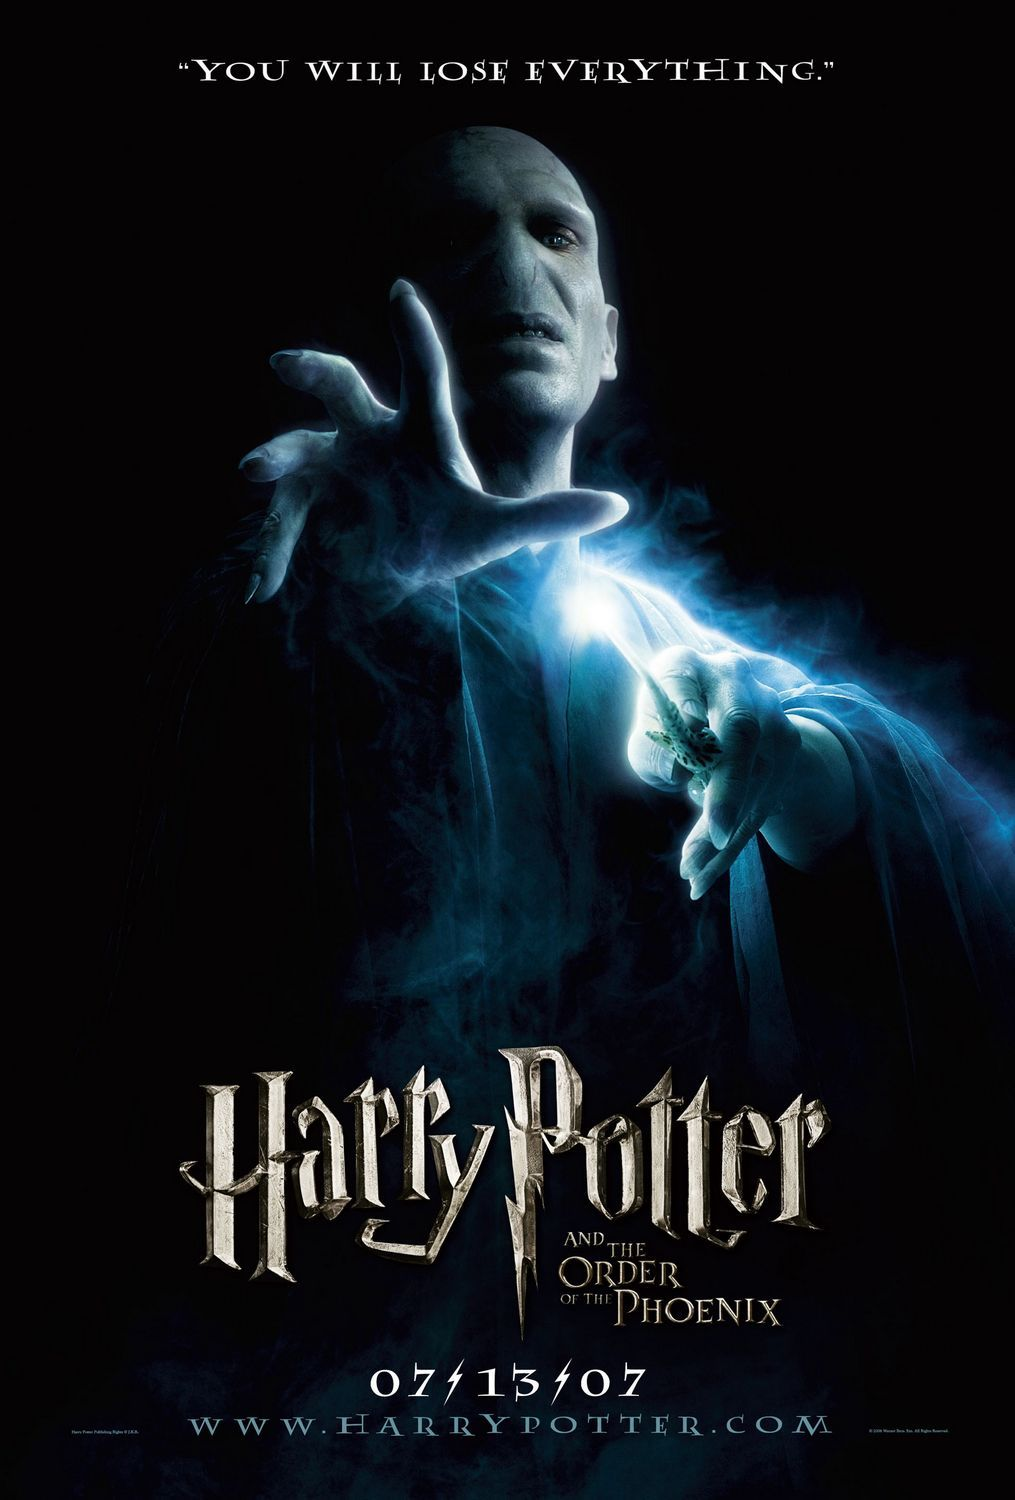 Harry Potter And The Order Of The Phoenix 1 Of 10 Extra Large Movie Poster Image Imp Awards Harry Potter Order Harry Potter Films Harry Potter Voldemort